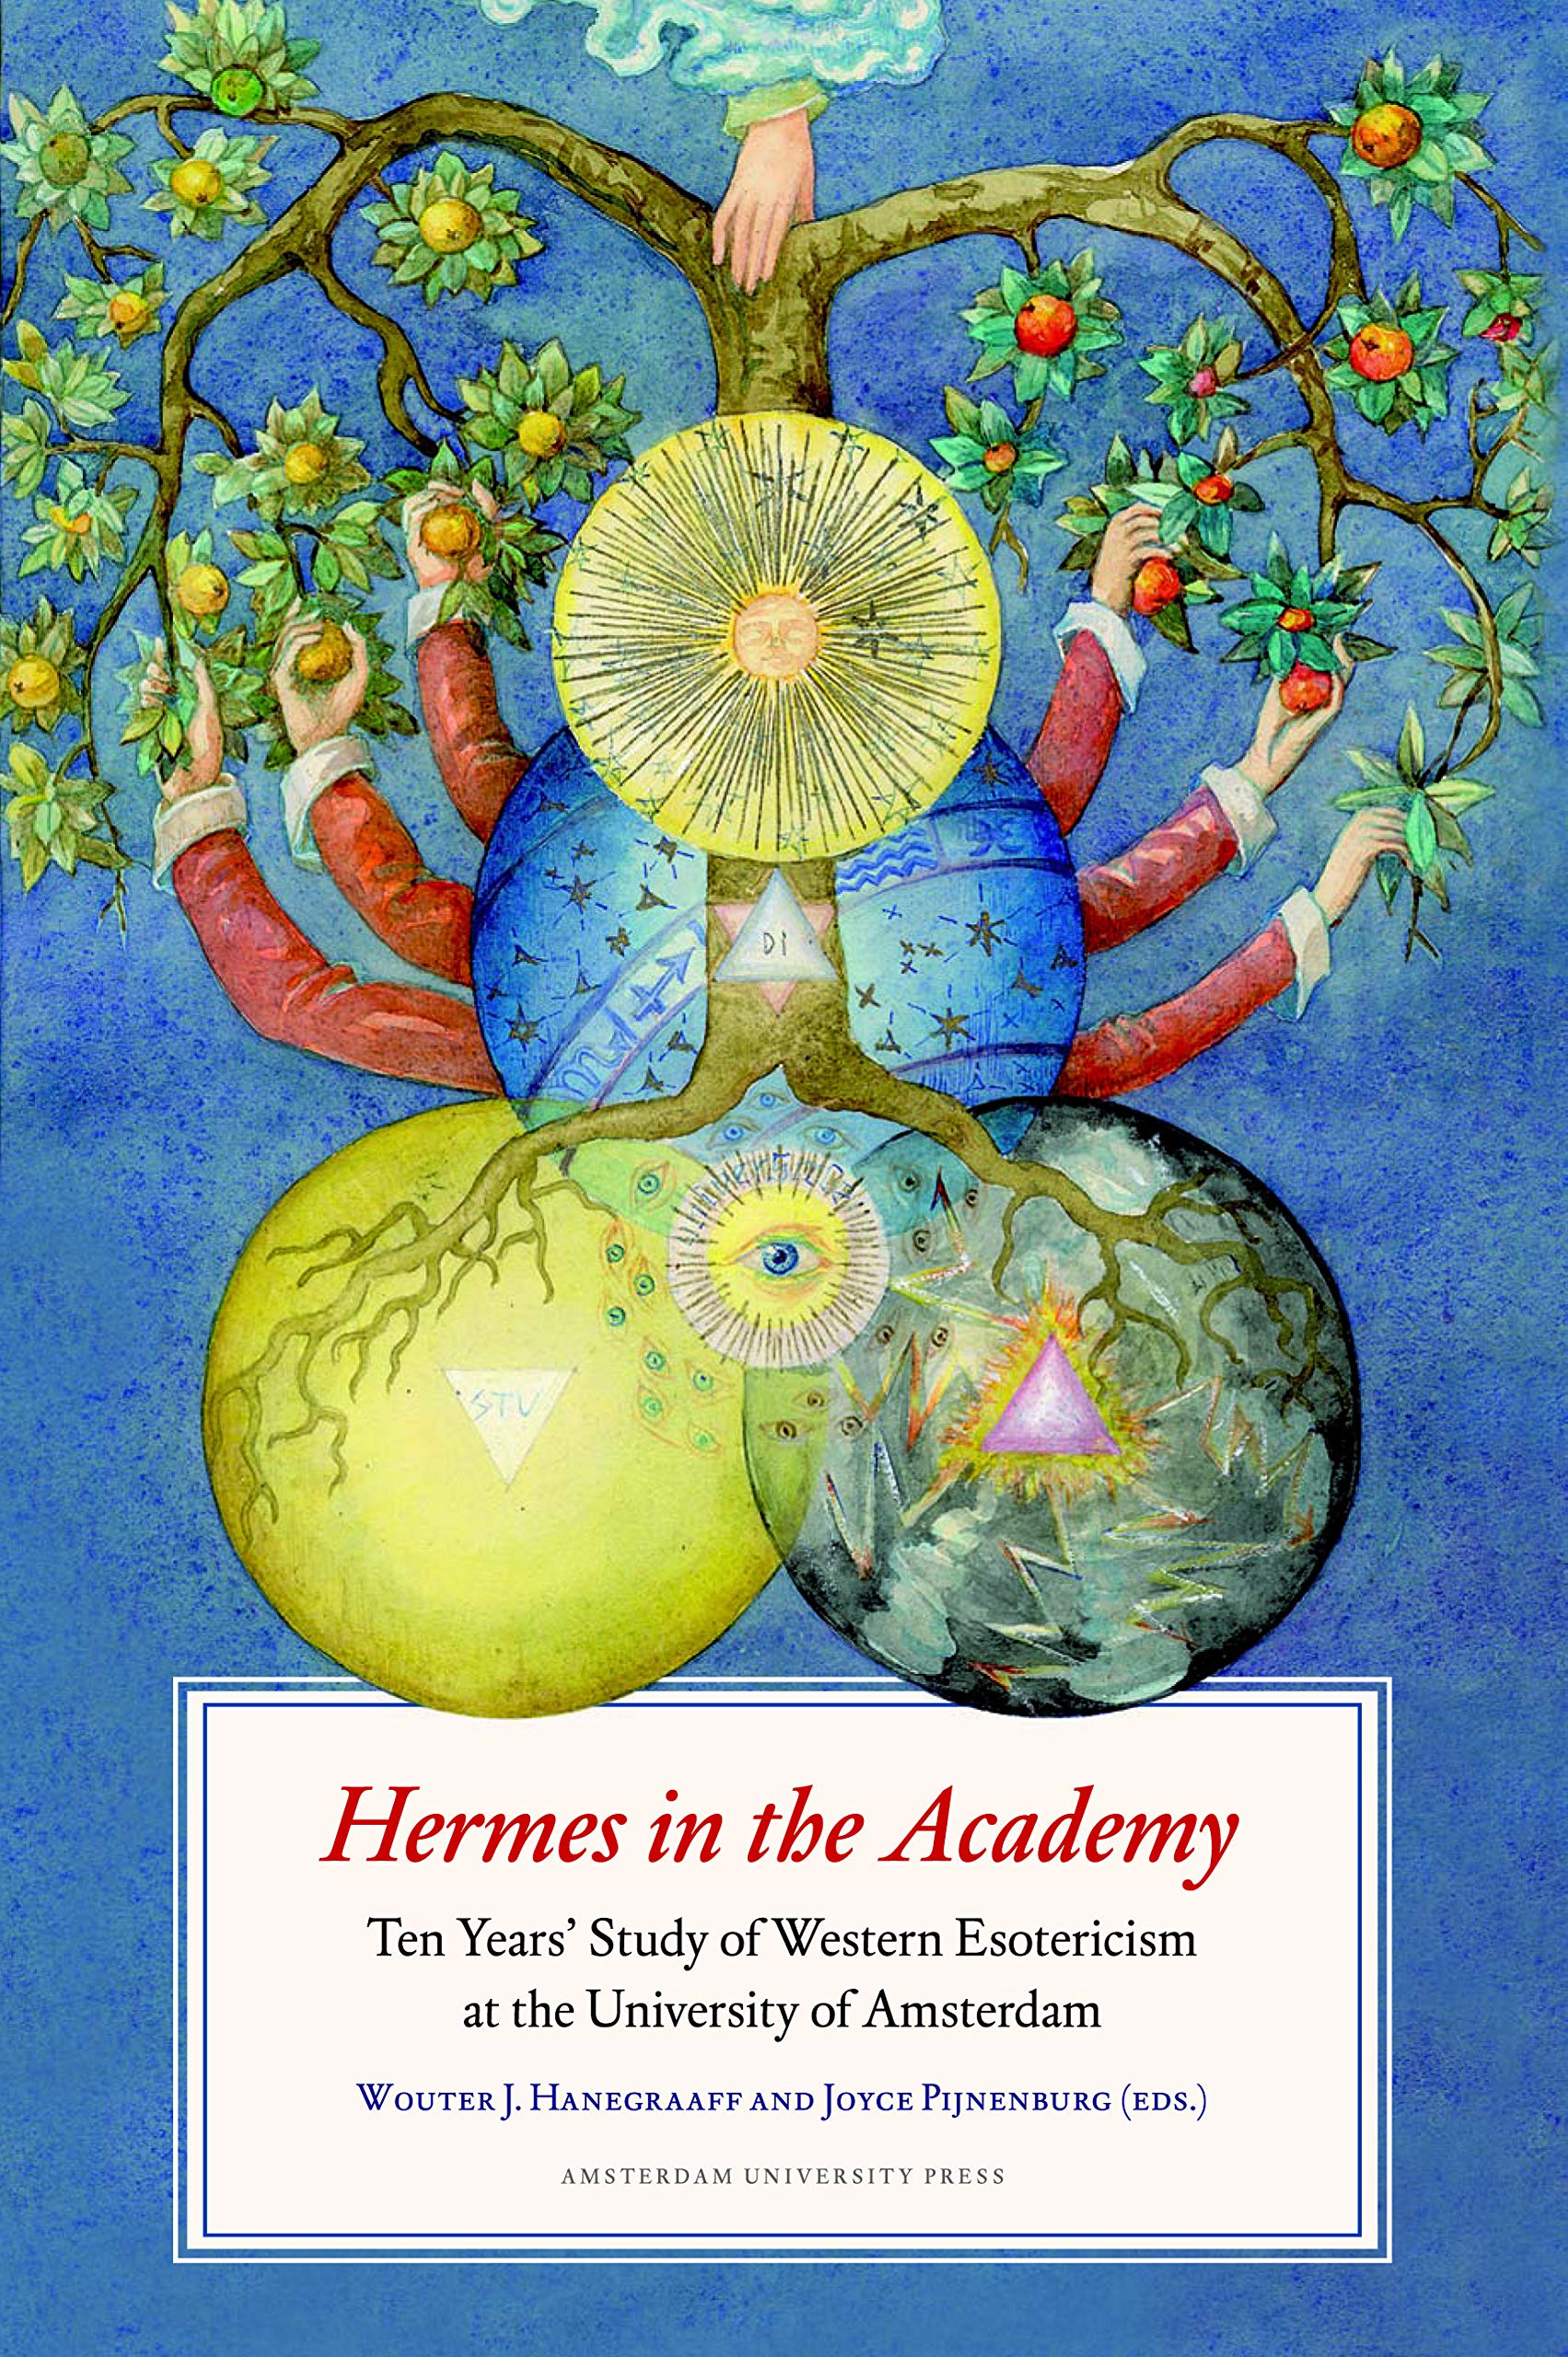 Hermes in the Academy: Ten Years' Study of Western